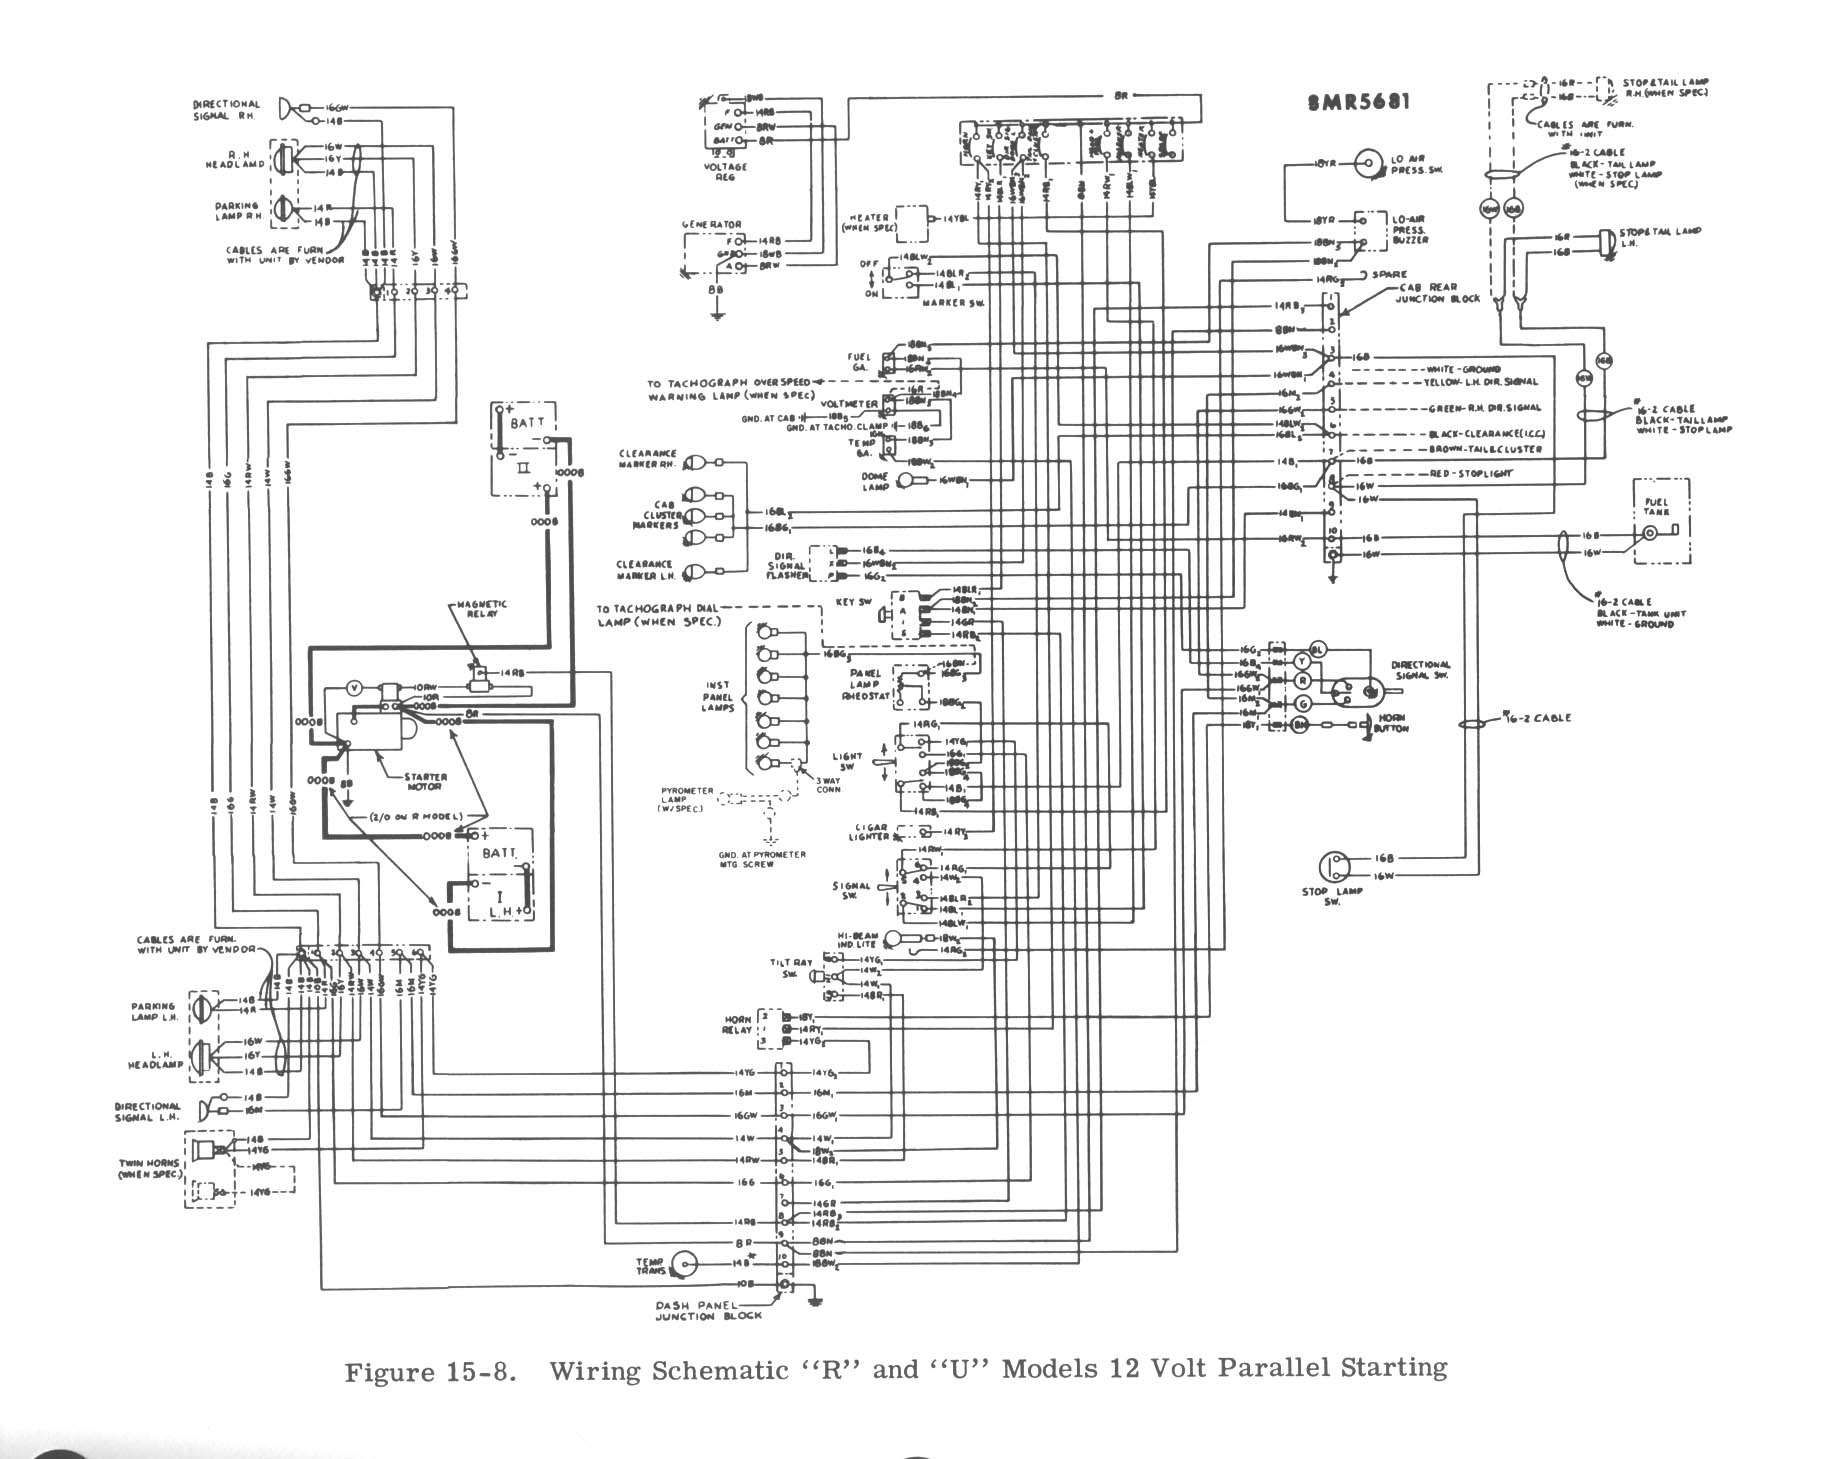 Mack Truck Wiring Pigtail - Wiring Diagram Expert on mack truck wire connectors, mack truck water pump, mack truck battery cover, mack electrical diagrams, mack truck timing marks, mack truck thermostat, mack truck motor, mack truck drive shaft, mack truck brakes, mack truck axles, mack truck oil cooler, mack truck tires, mack truck oil pan, mack truck fuse panel, mack truck solenoid, mack truck wiring diagram, mack truck gauges, mack truck horn, mack truck front end, mack truck engine compartment,